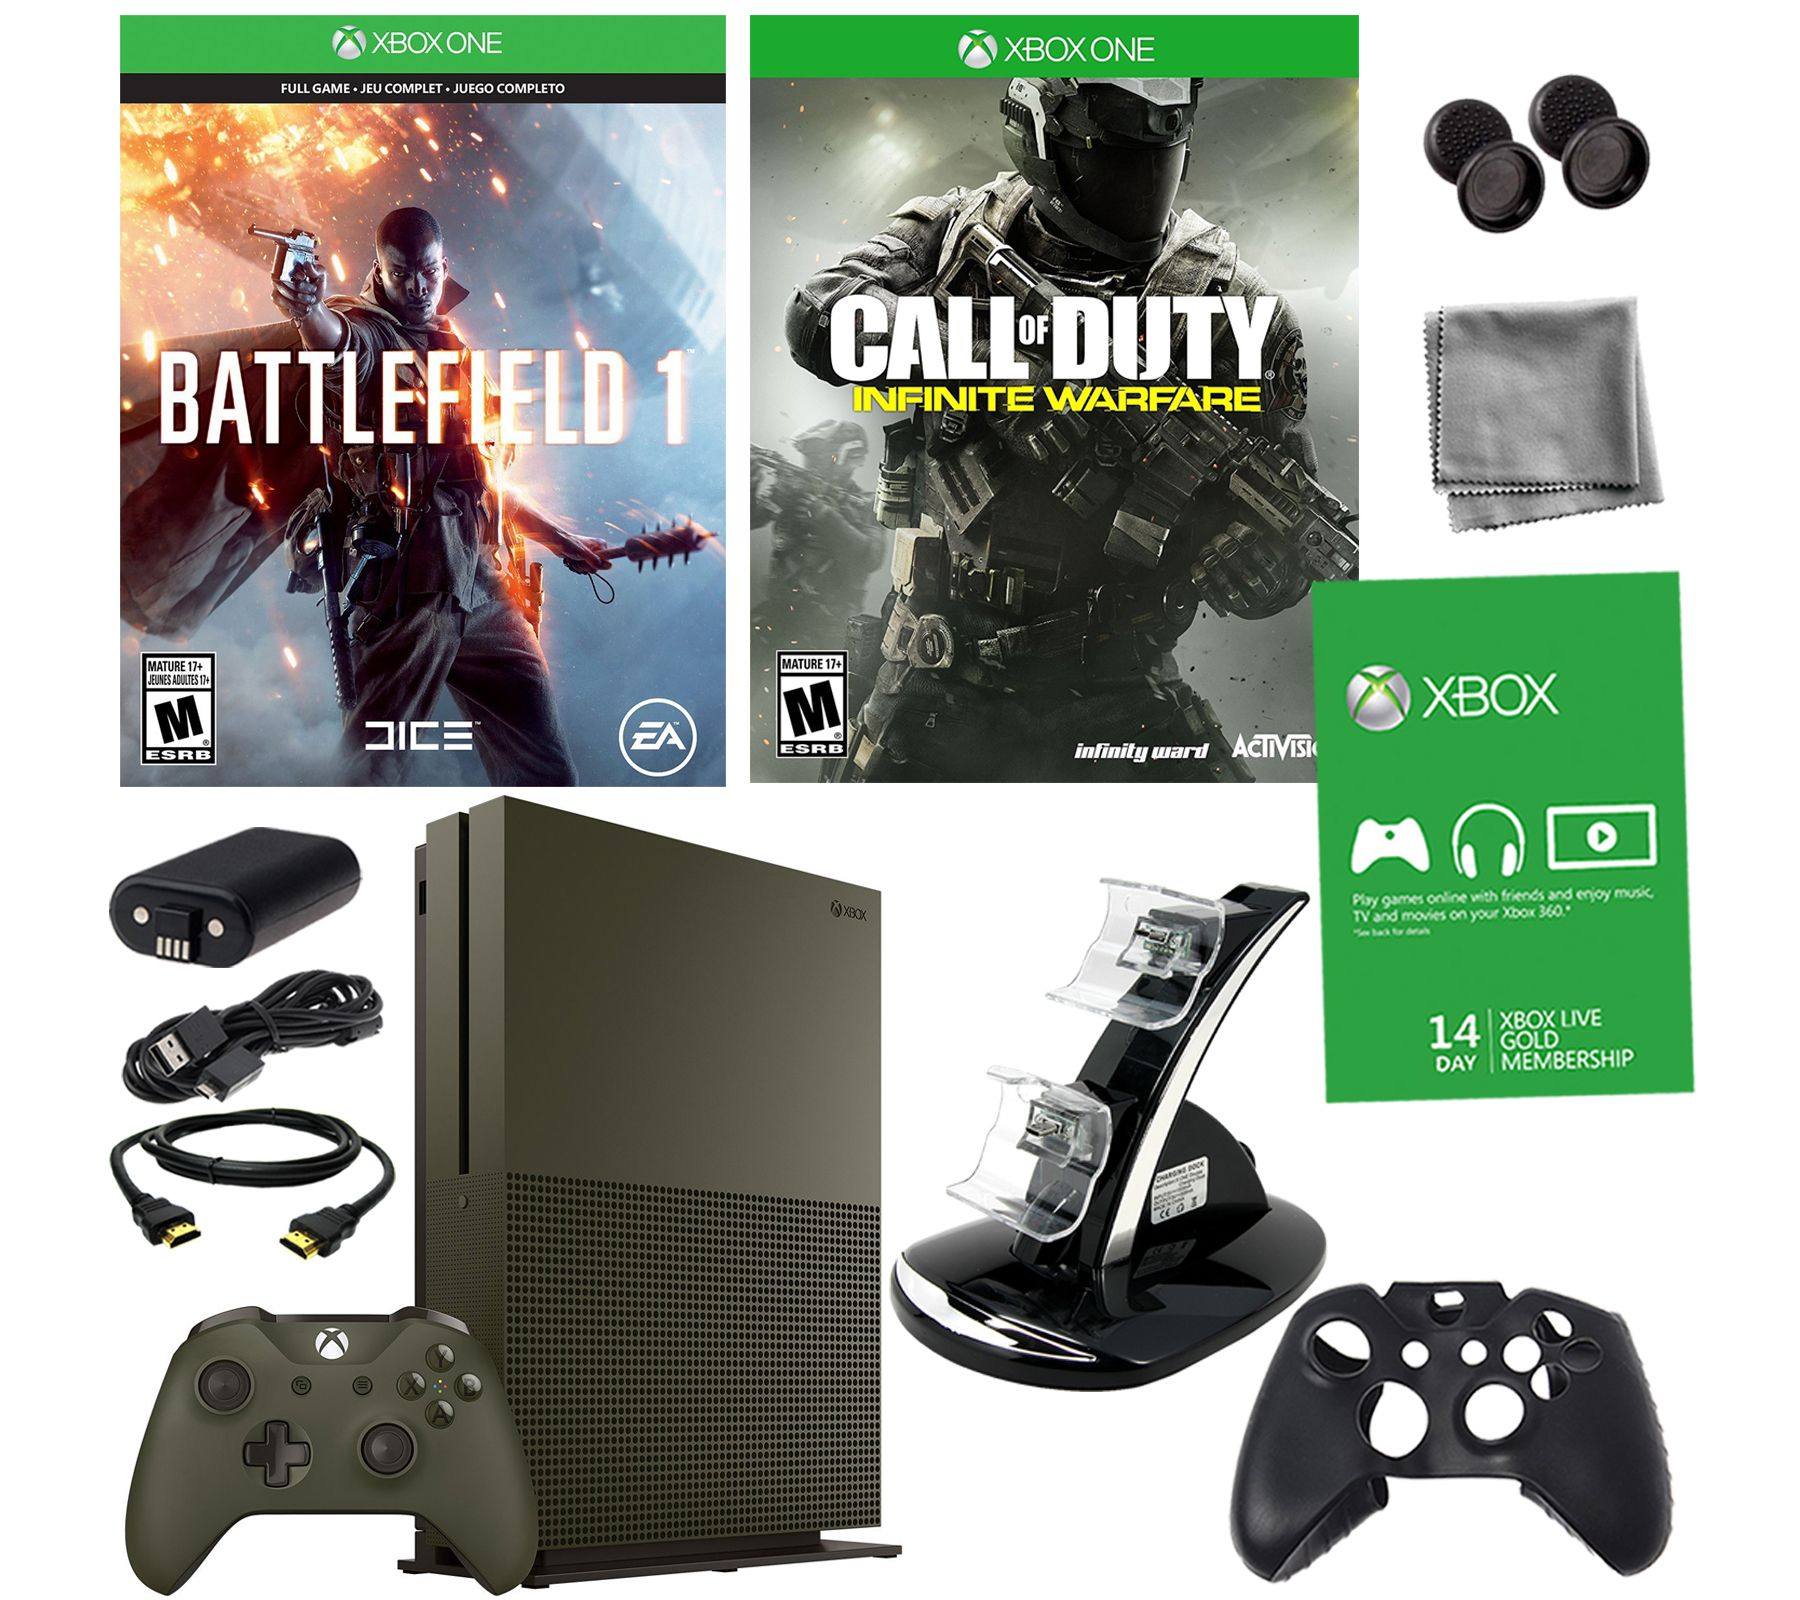 Xbox One S 1TB SE Battlefield 1 Bundle WithCall Of Duty